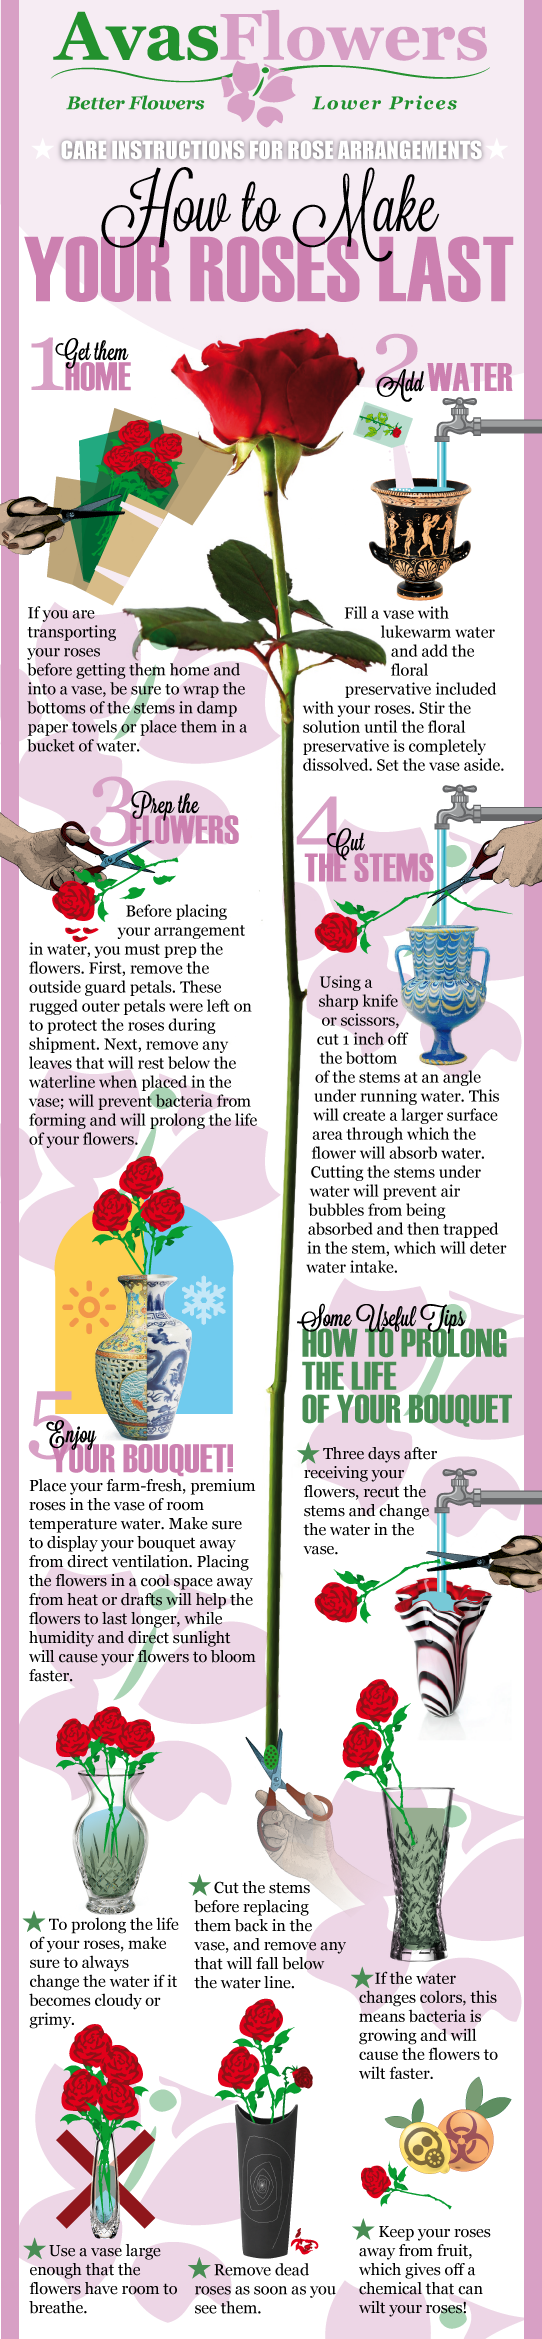 Infographic - How To Make Your Roses Last